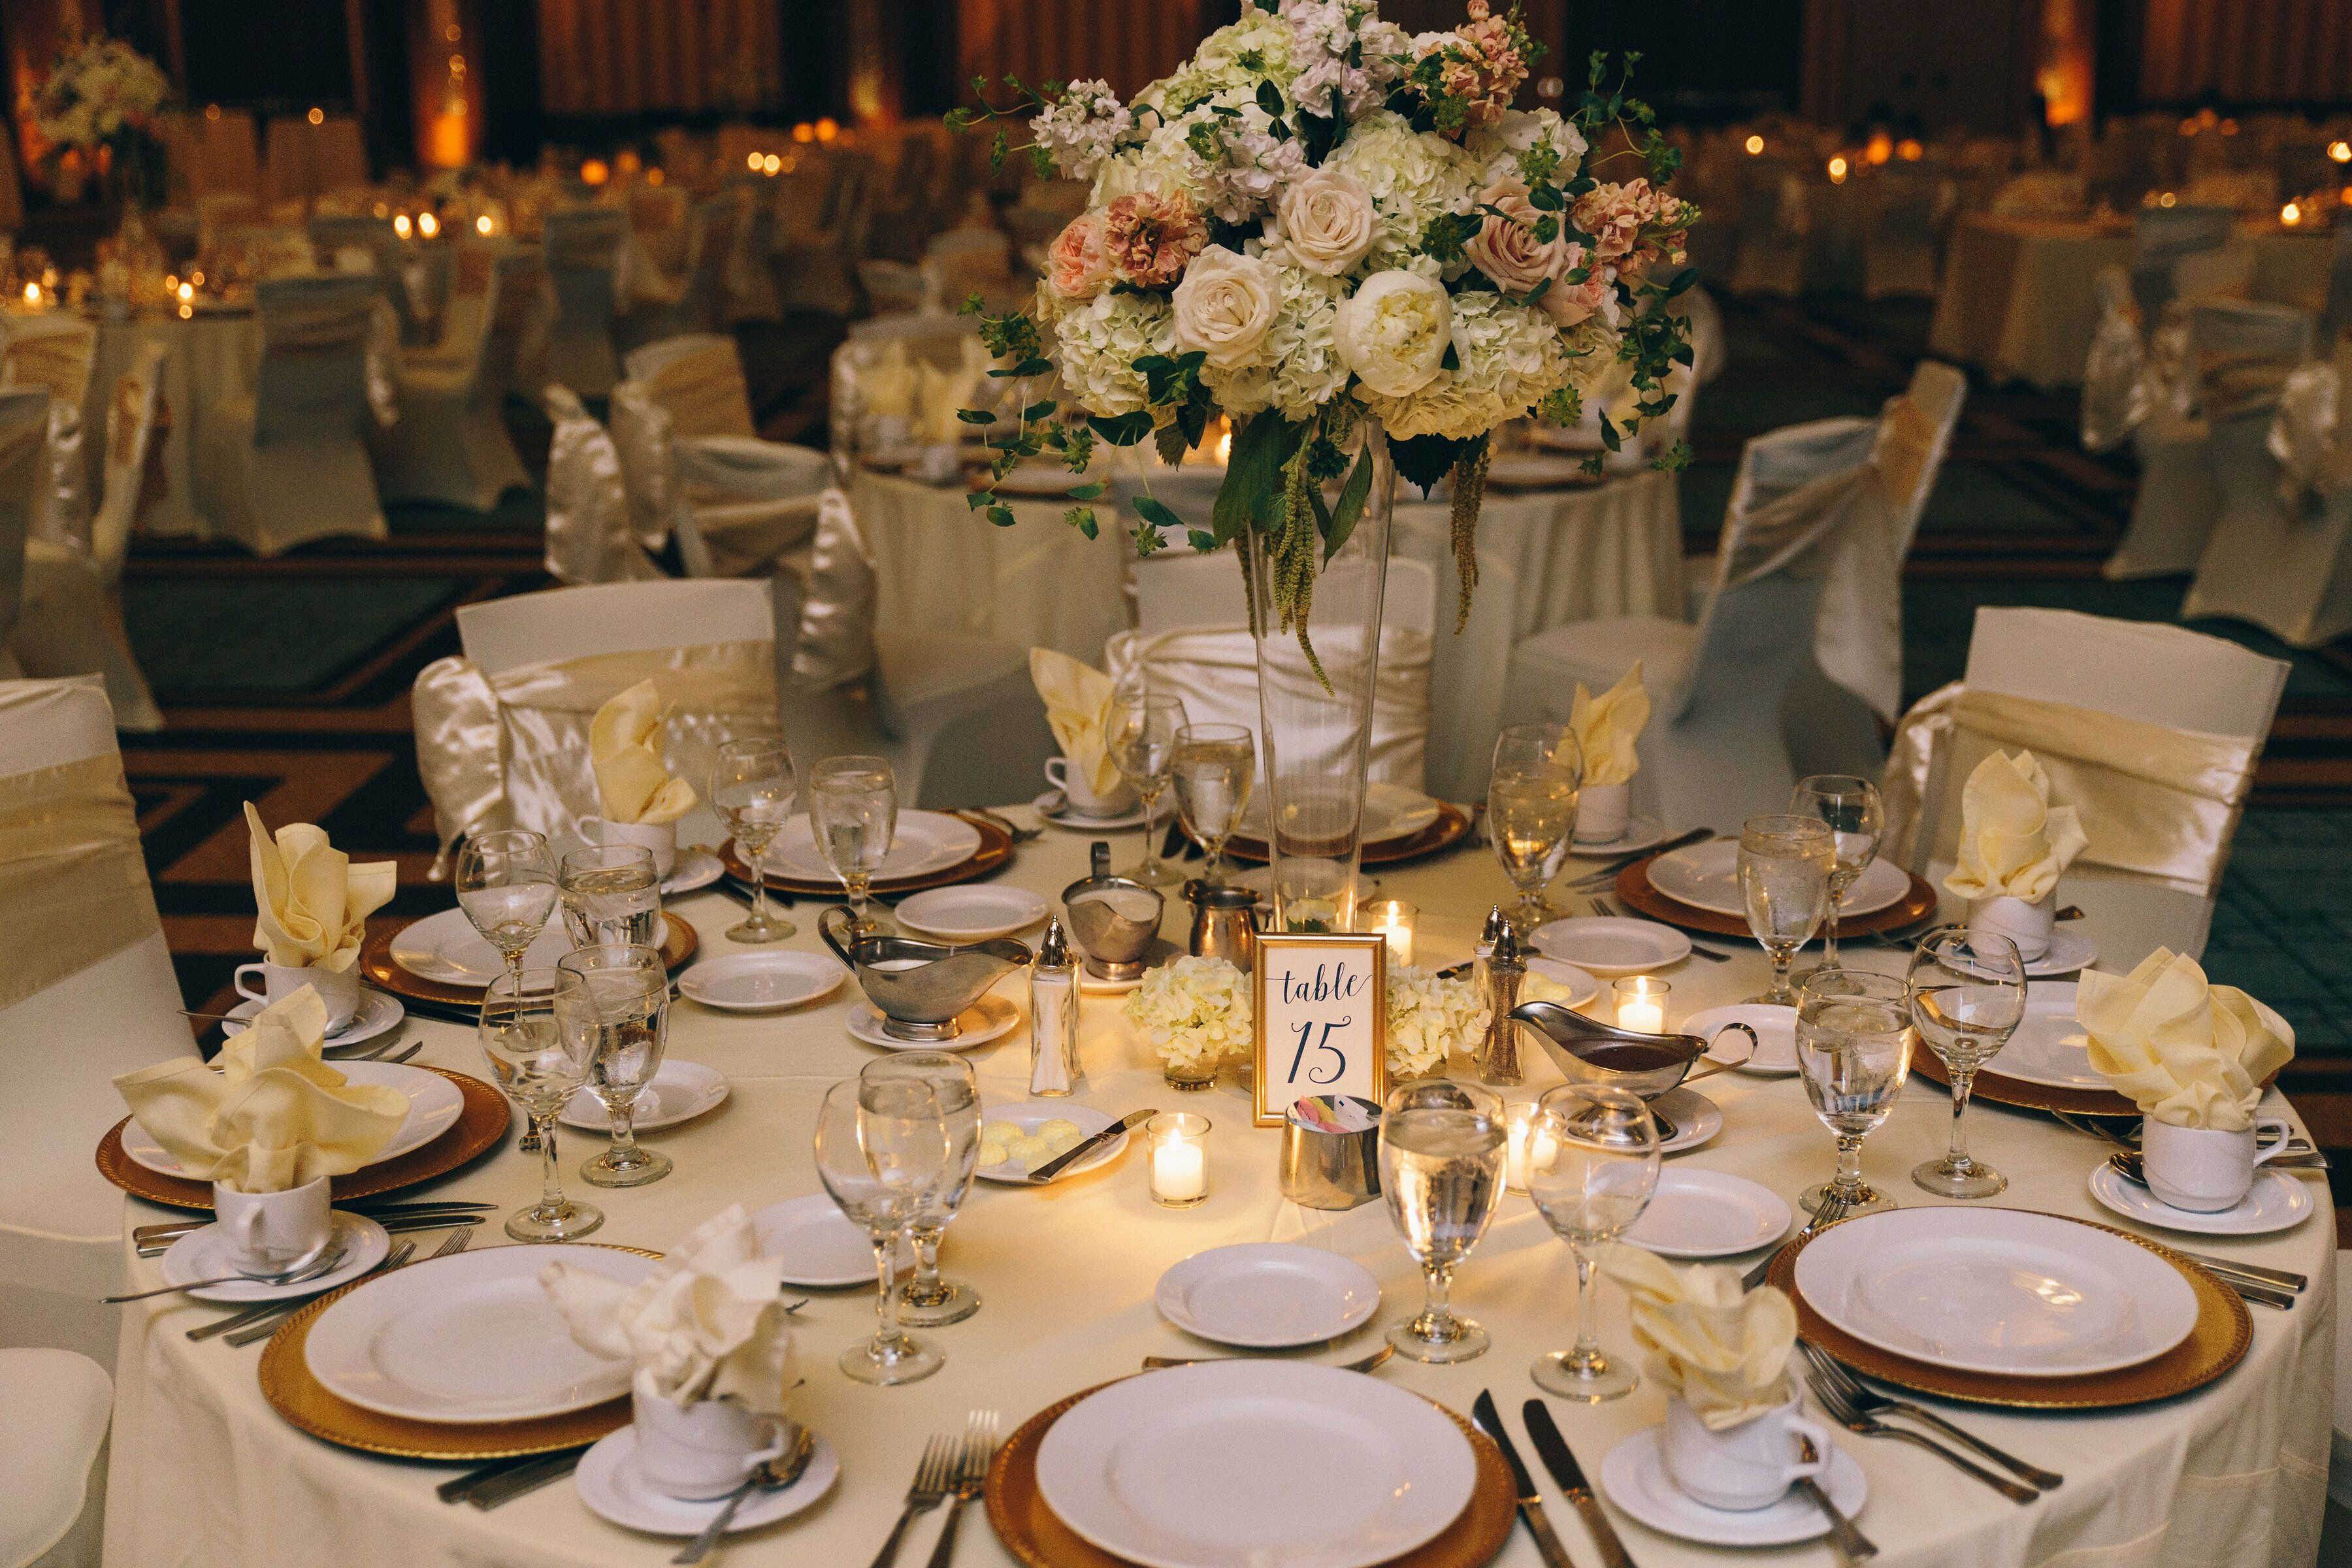 Wedding Venues in Michigan City, IN - The Knot